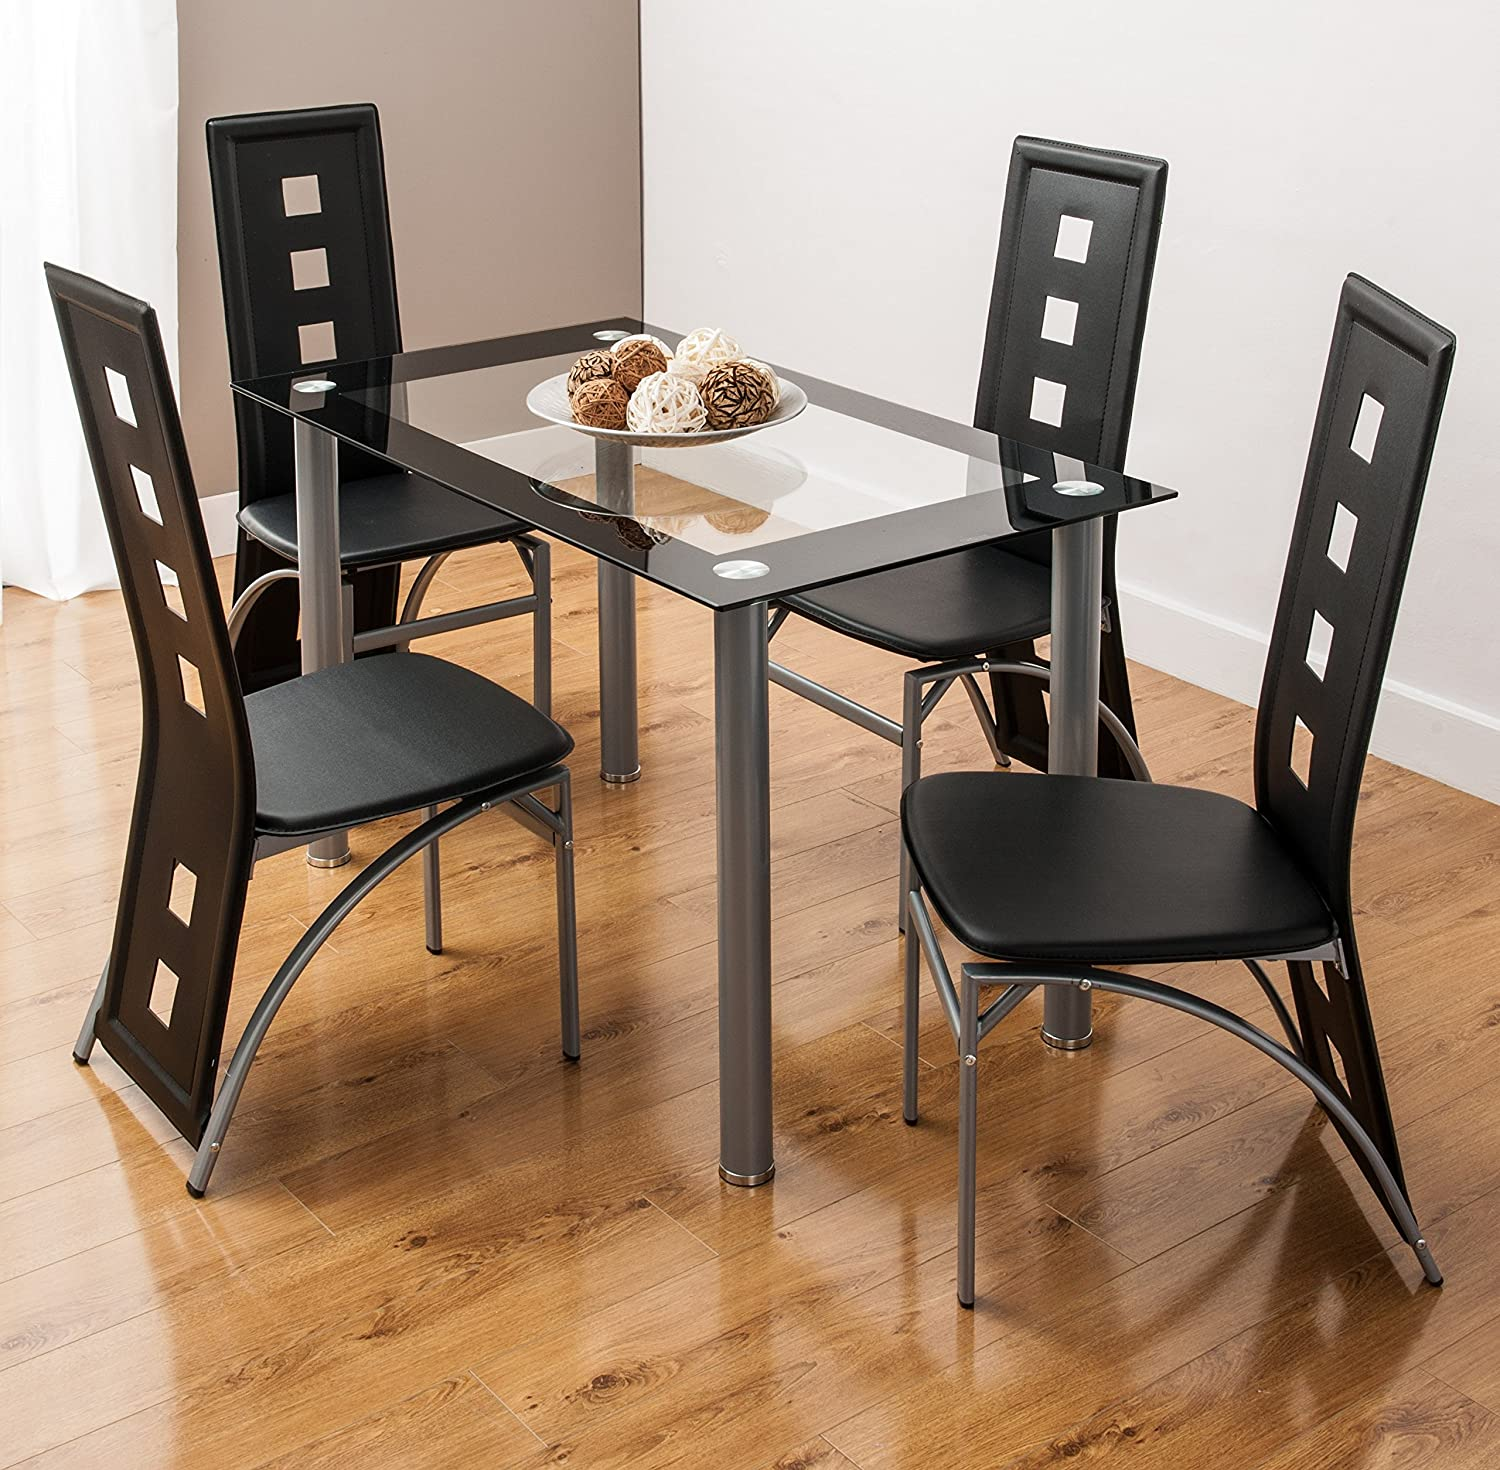 Glass Dining Table Set And 6 Faux Leather Chairs In Square Back Designs By Smartdesignfurnishings 4 Black Amazon Co Uk Kitchen Home